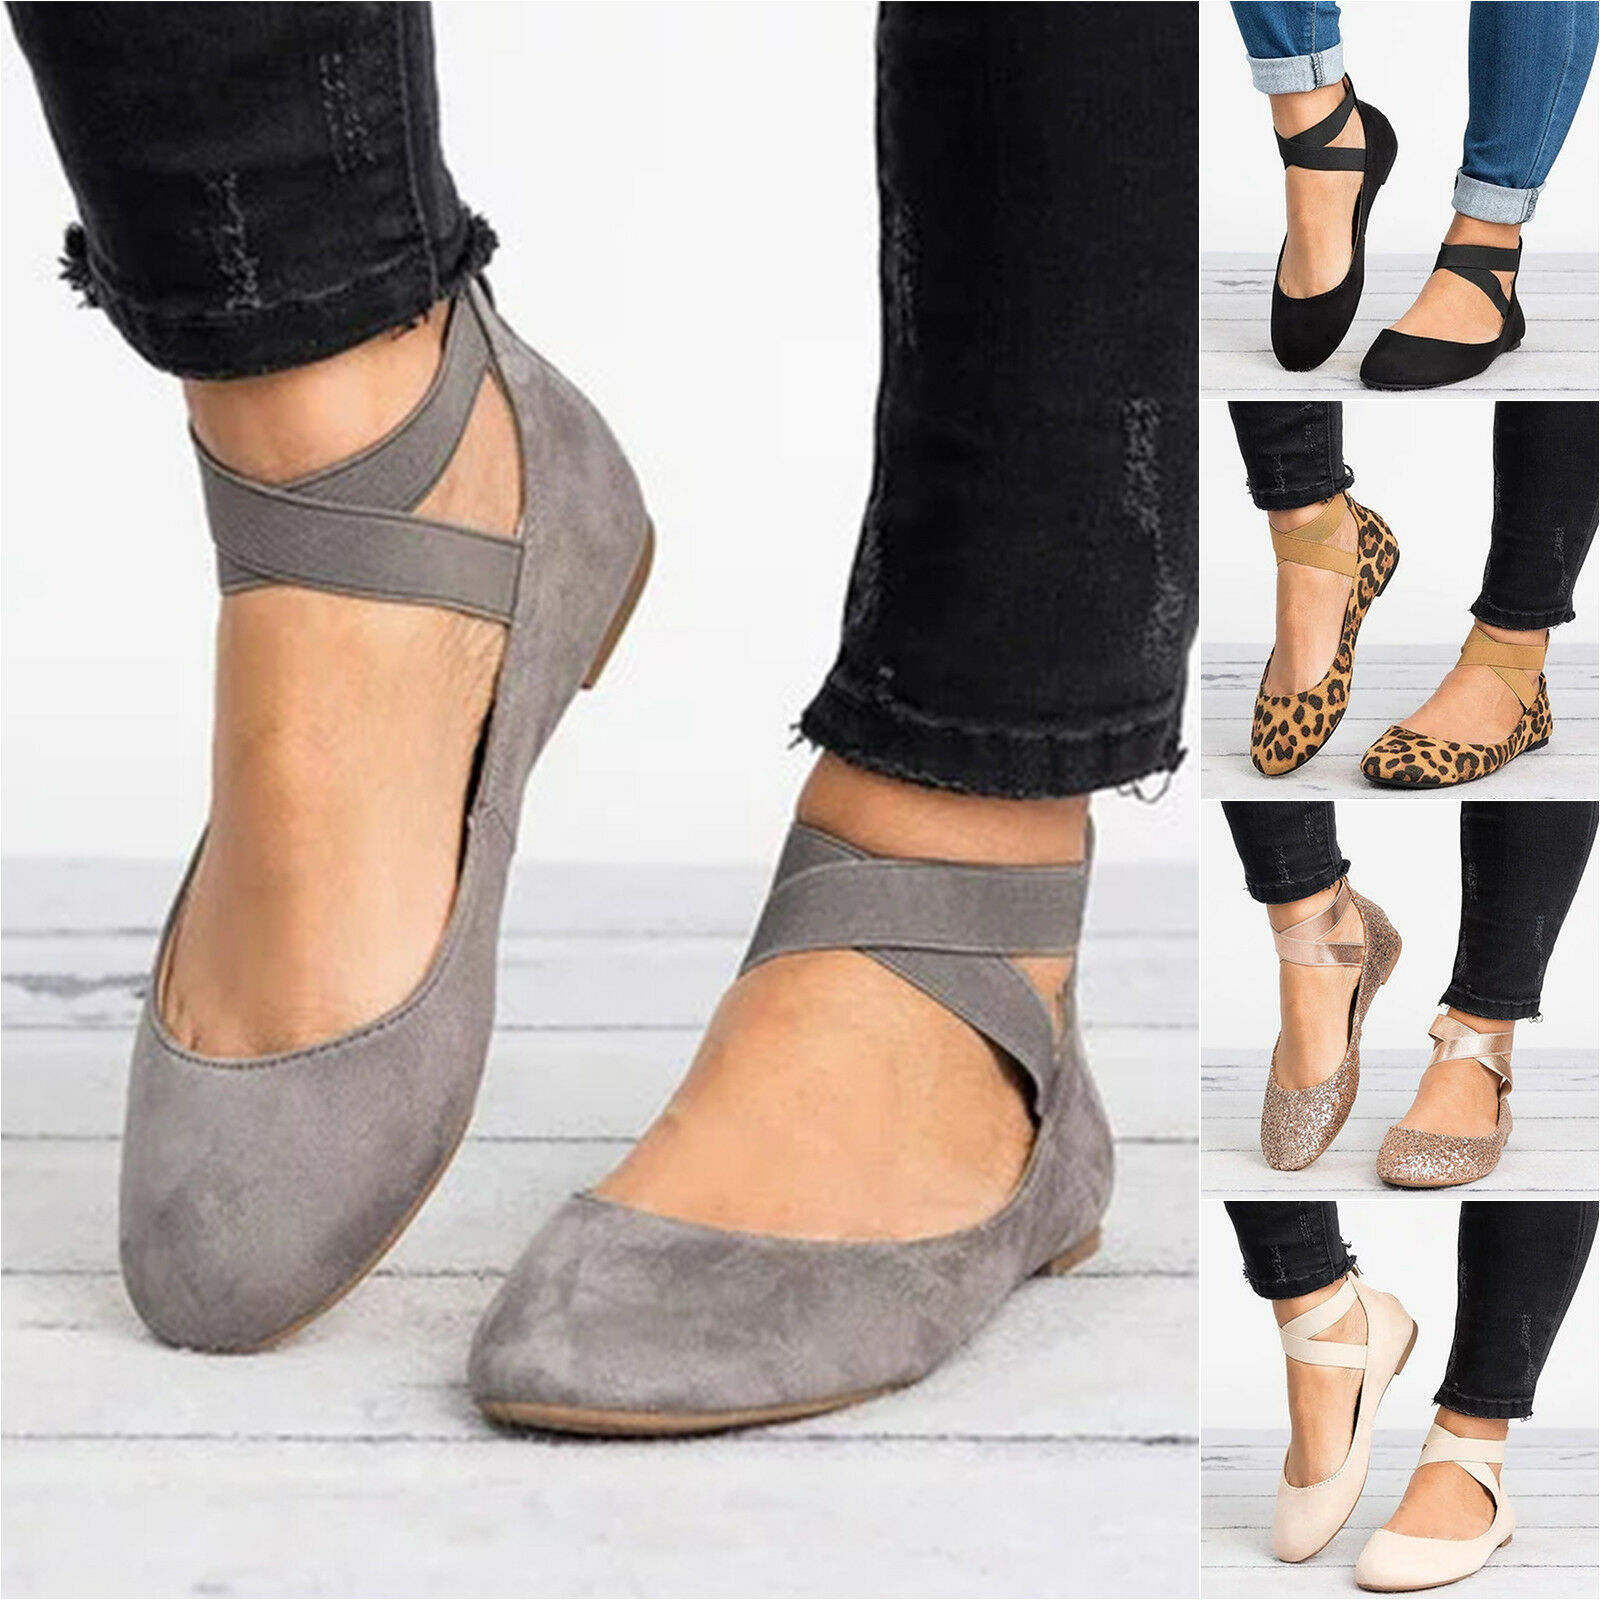 US Women Ankle Court Strap Ballerina Ballet Flats Court Ankle Pumps Summer Casual Shoes Size 7f1599